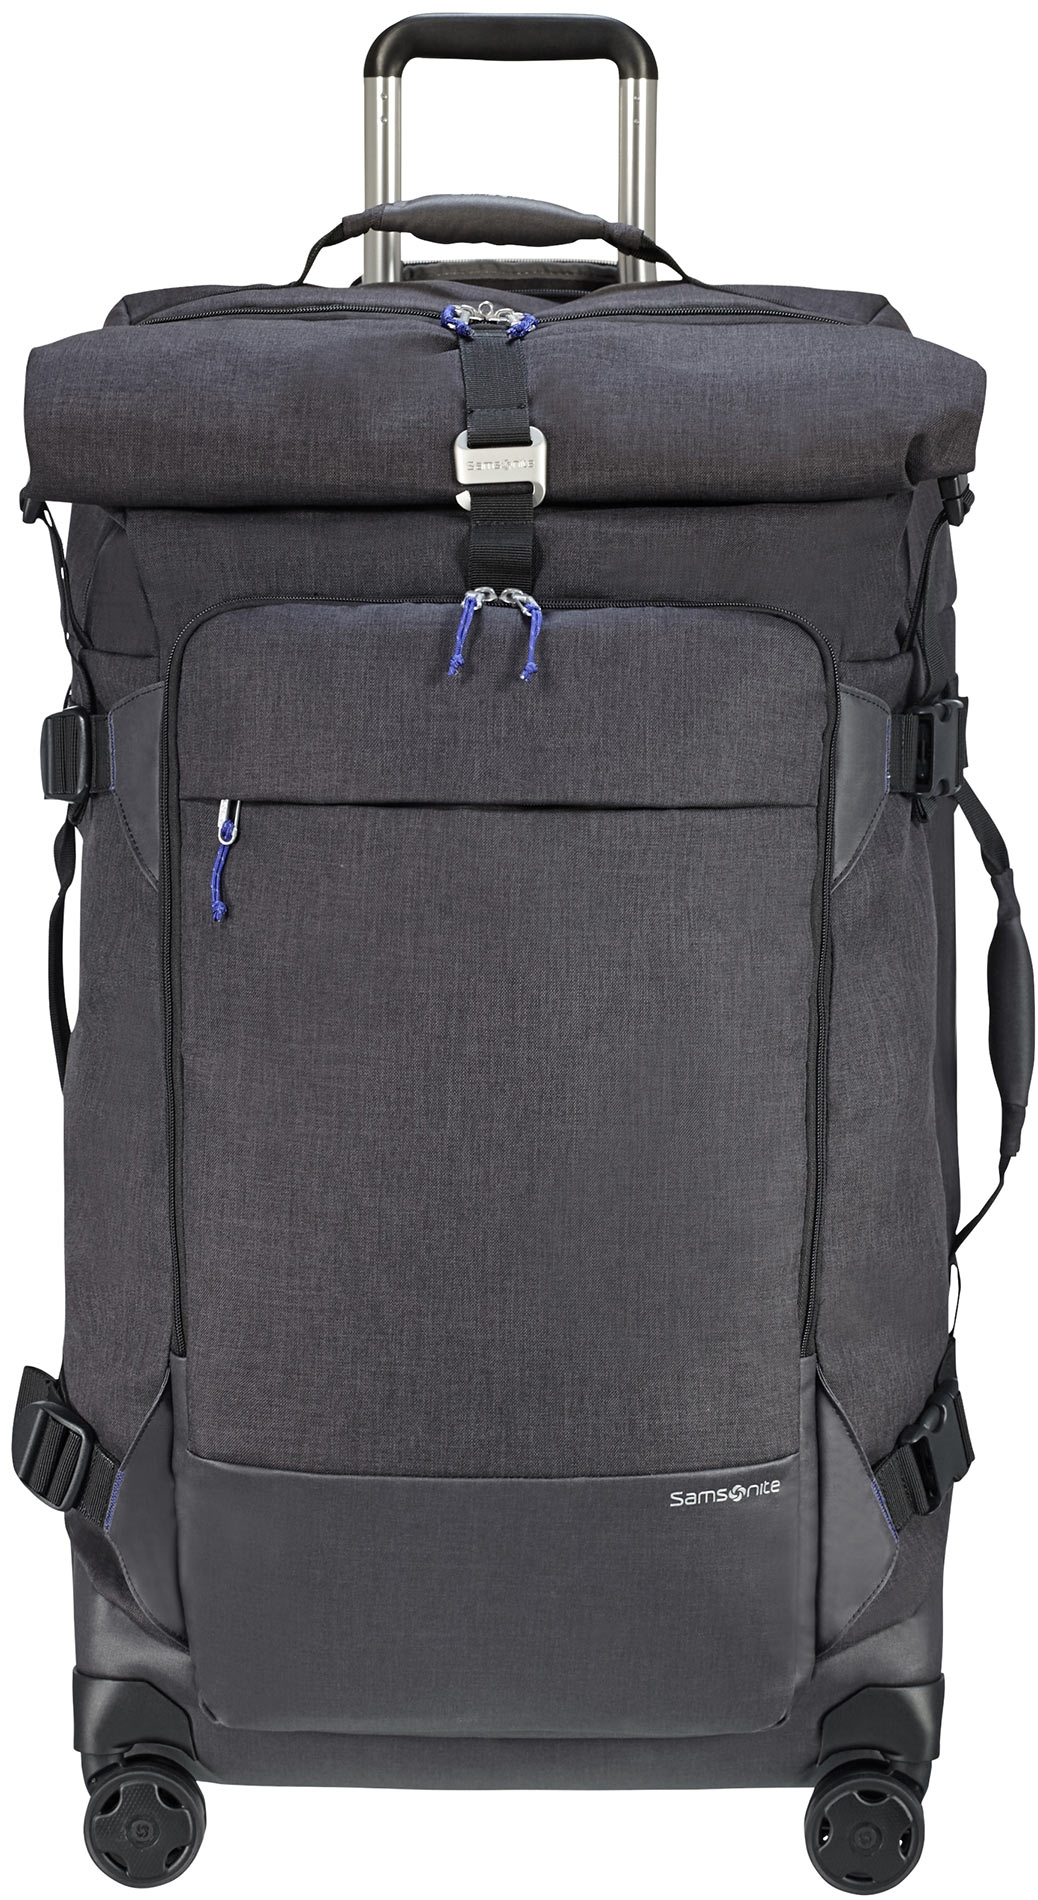 SAMSONITE ZIPROLL Grand sac XL avec trolley